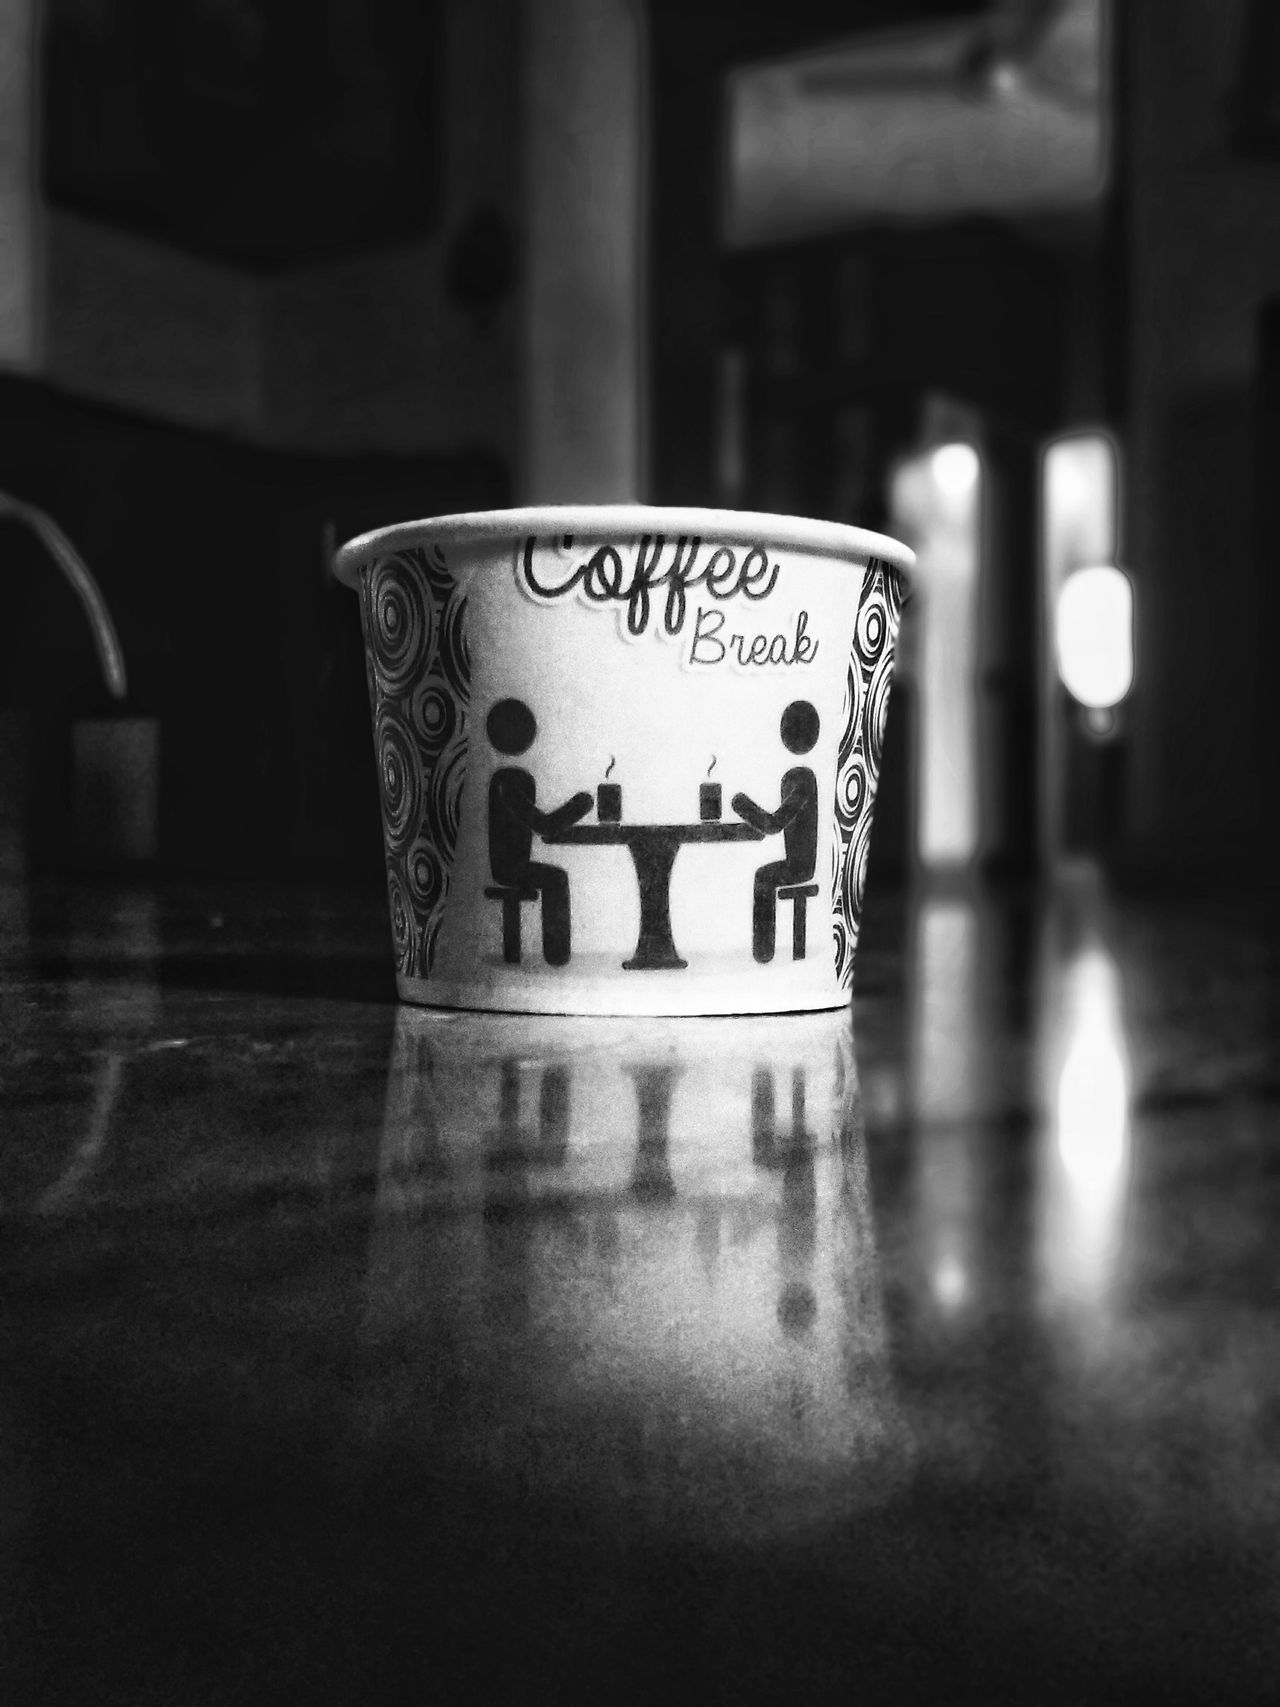 Text Indoors  No People Day Close-up Coffee Break Snacks! Black & White Monochrome Bnw TheWeek On EyEem Cup Cafe Latte Stationery